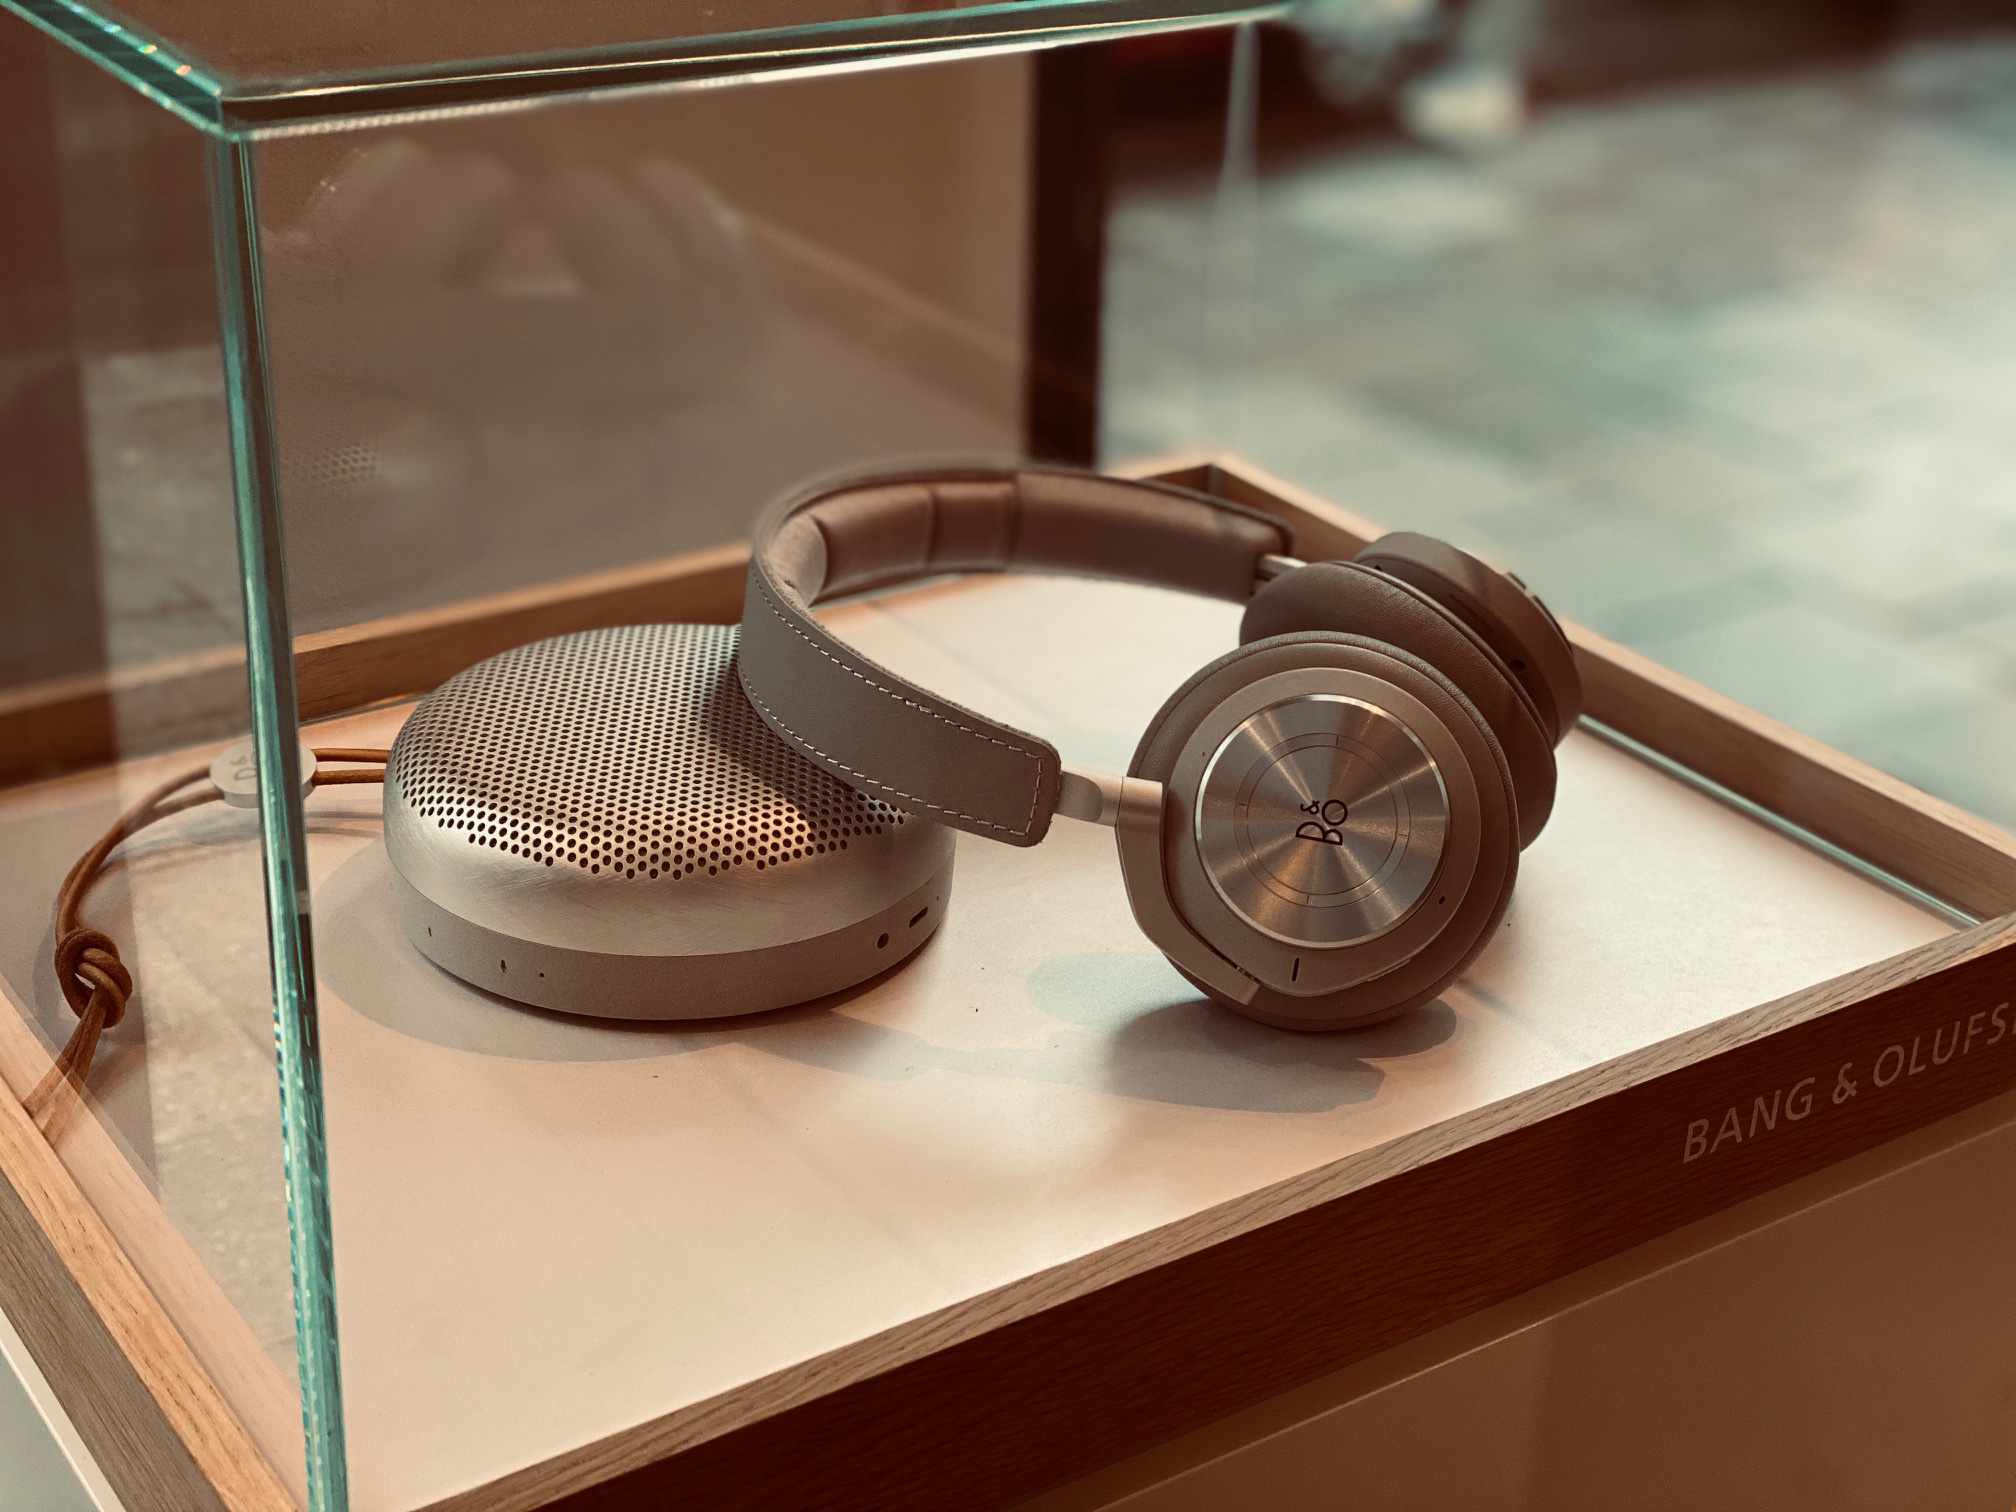 Bang & Olufsen Contrast Edition by Norm Architects